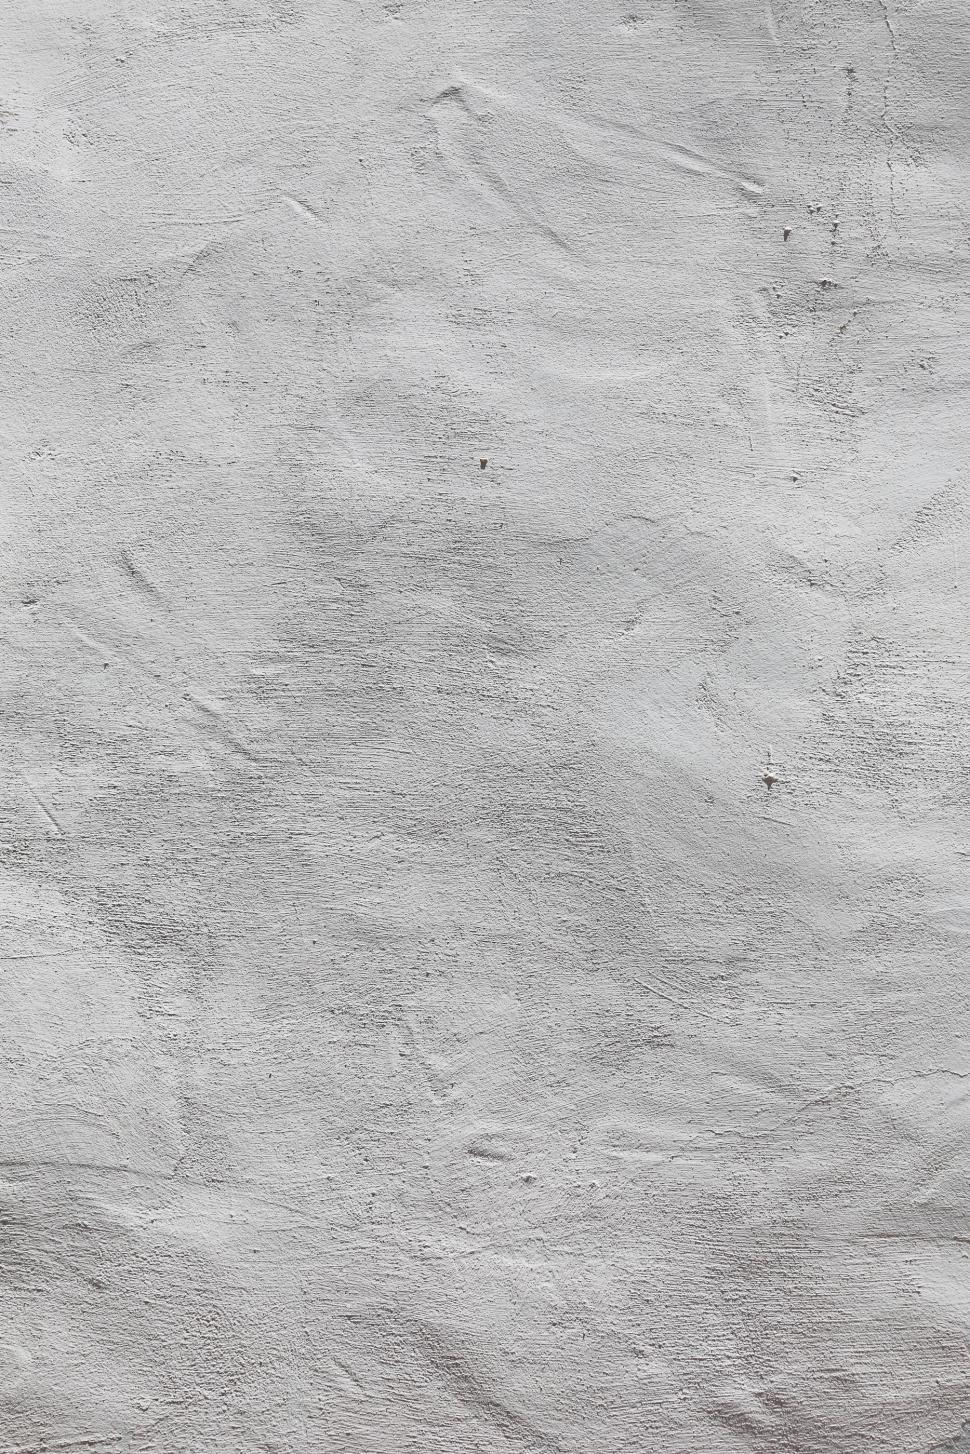 Download Free Stock HD Photo of Smooth plaster background Online